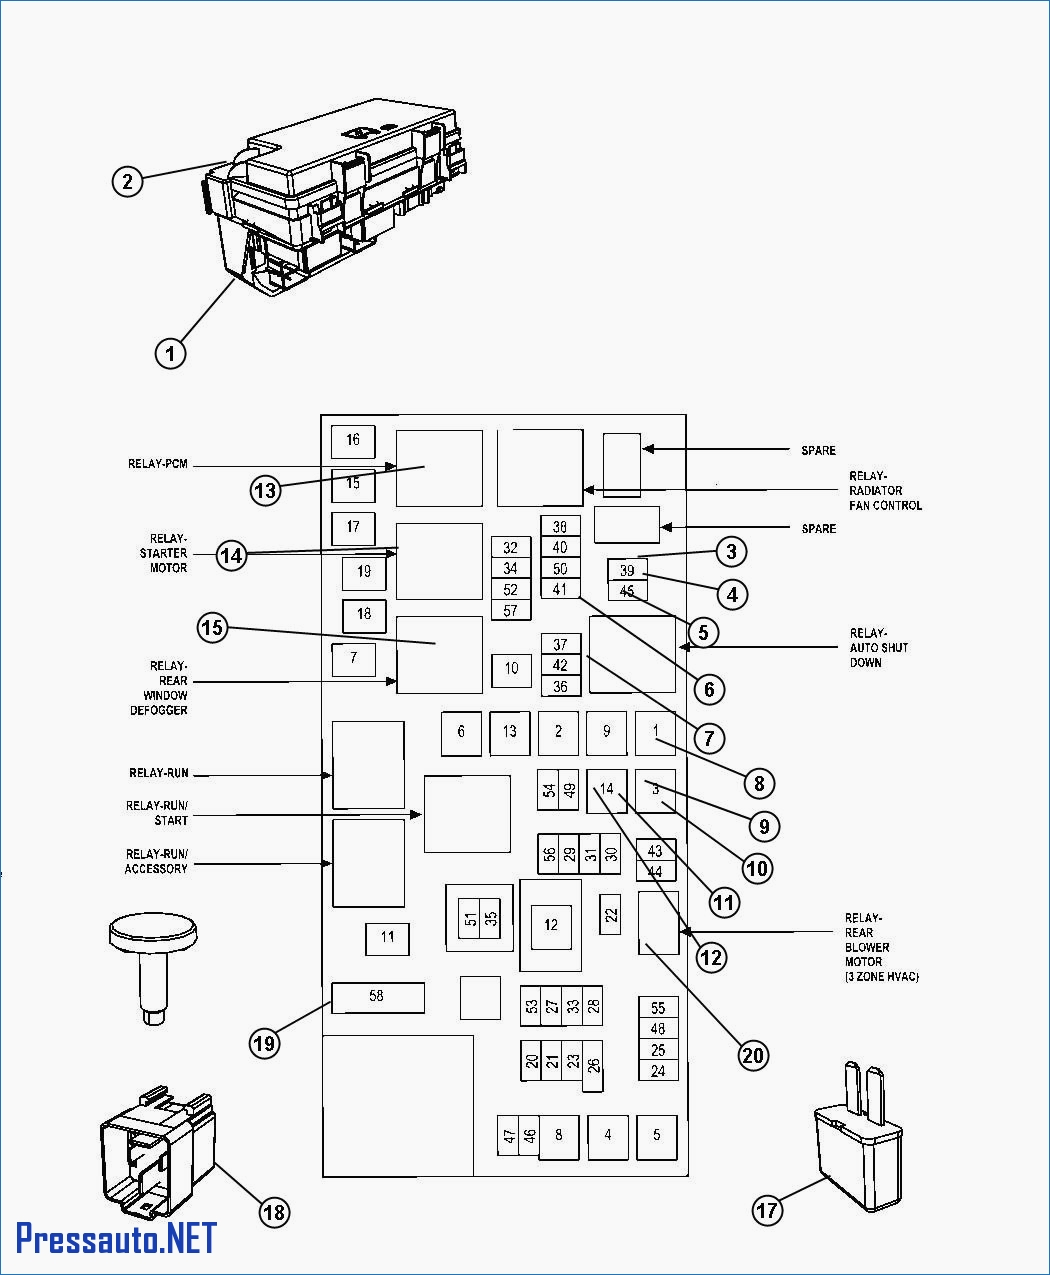 1050x1275 2008 dodge charger ignition wiring diagram